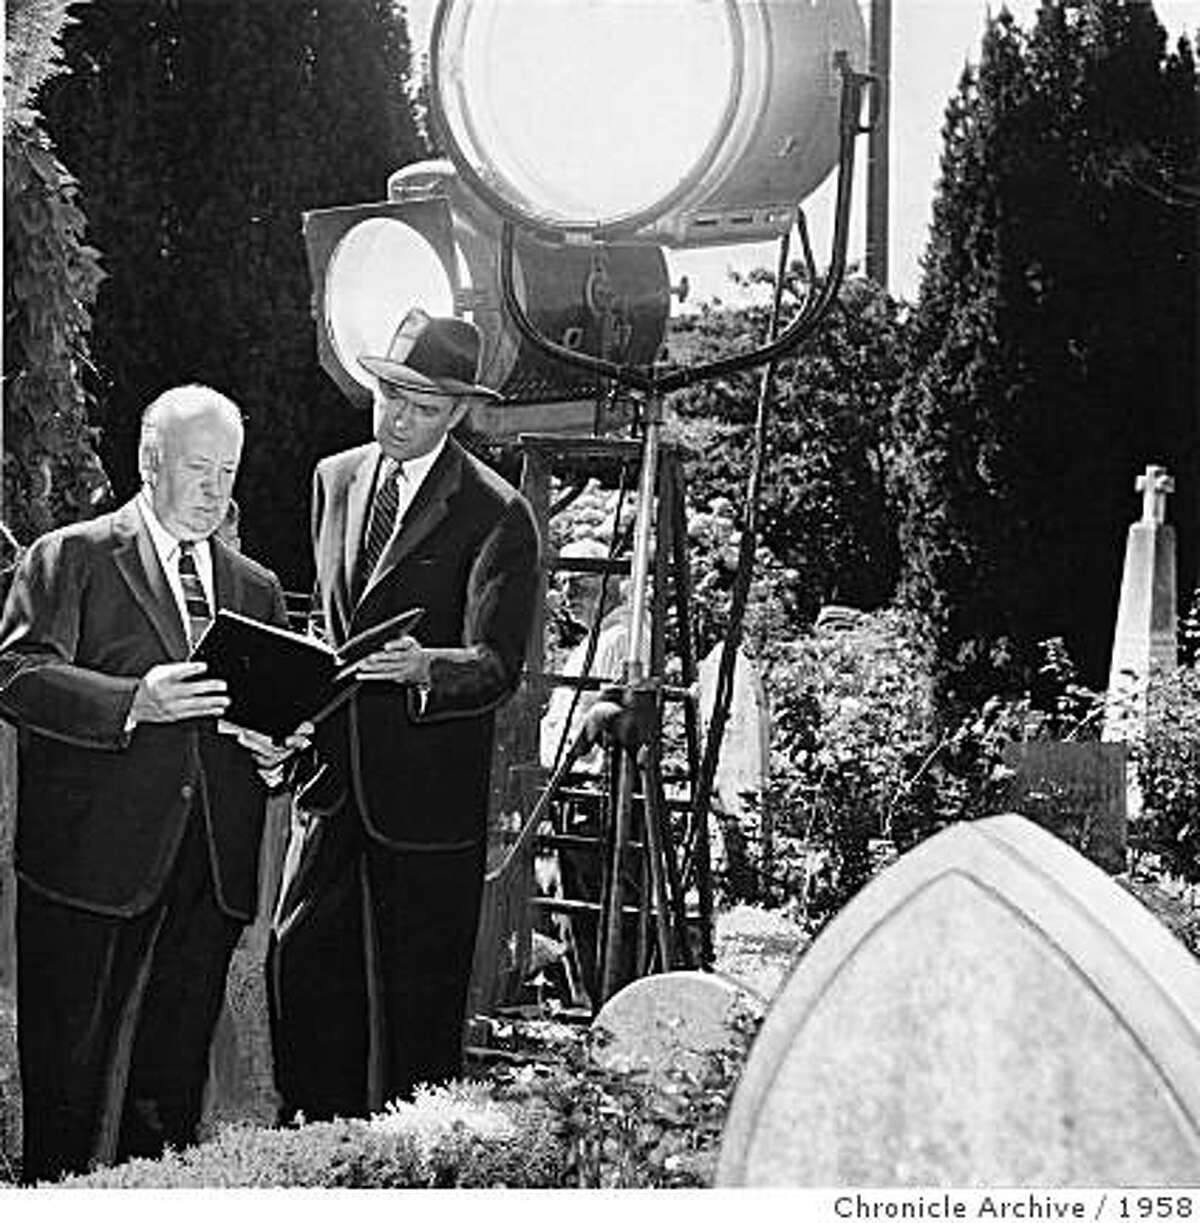 """Alfred Hitchcock and James Stewart during the filming of """"Vertigo"""" in 1958 at Mission Dolores, San Francisco"""